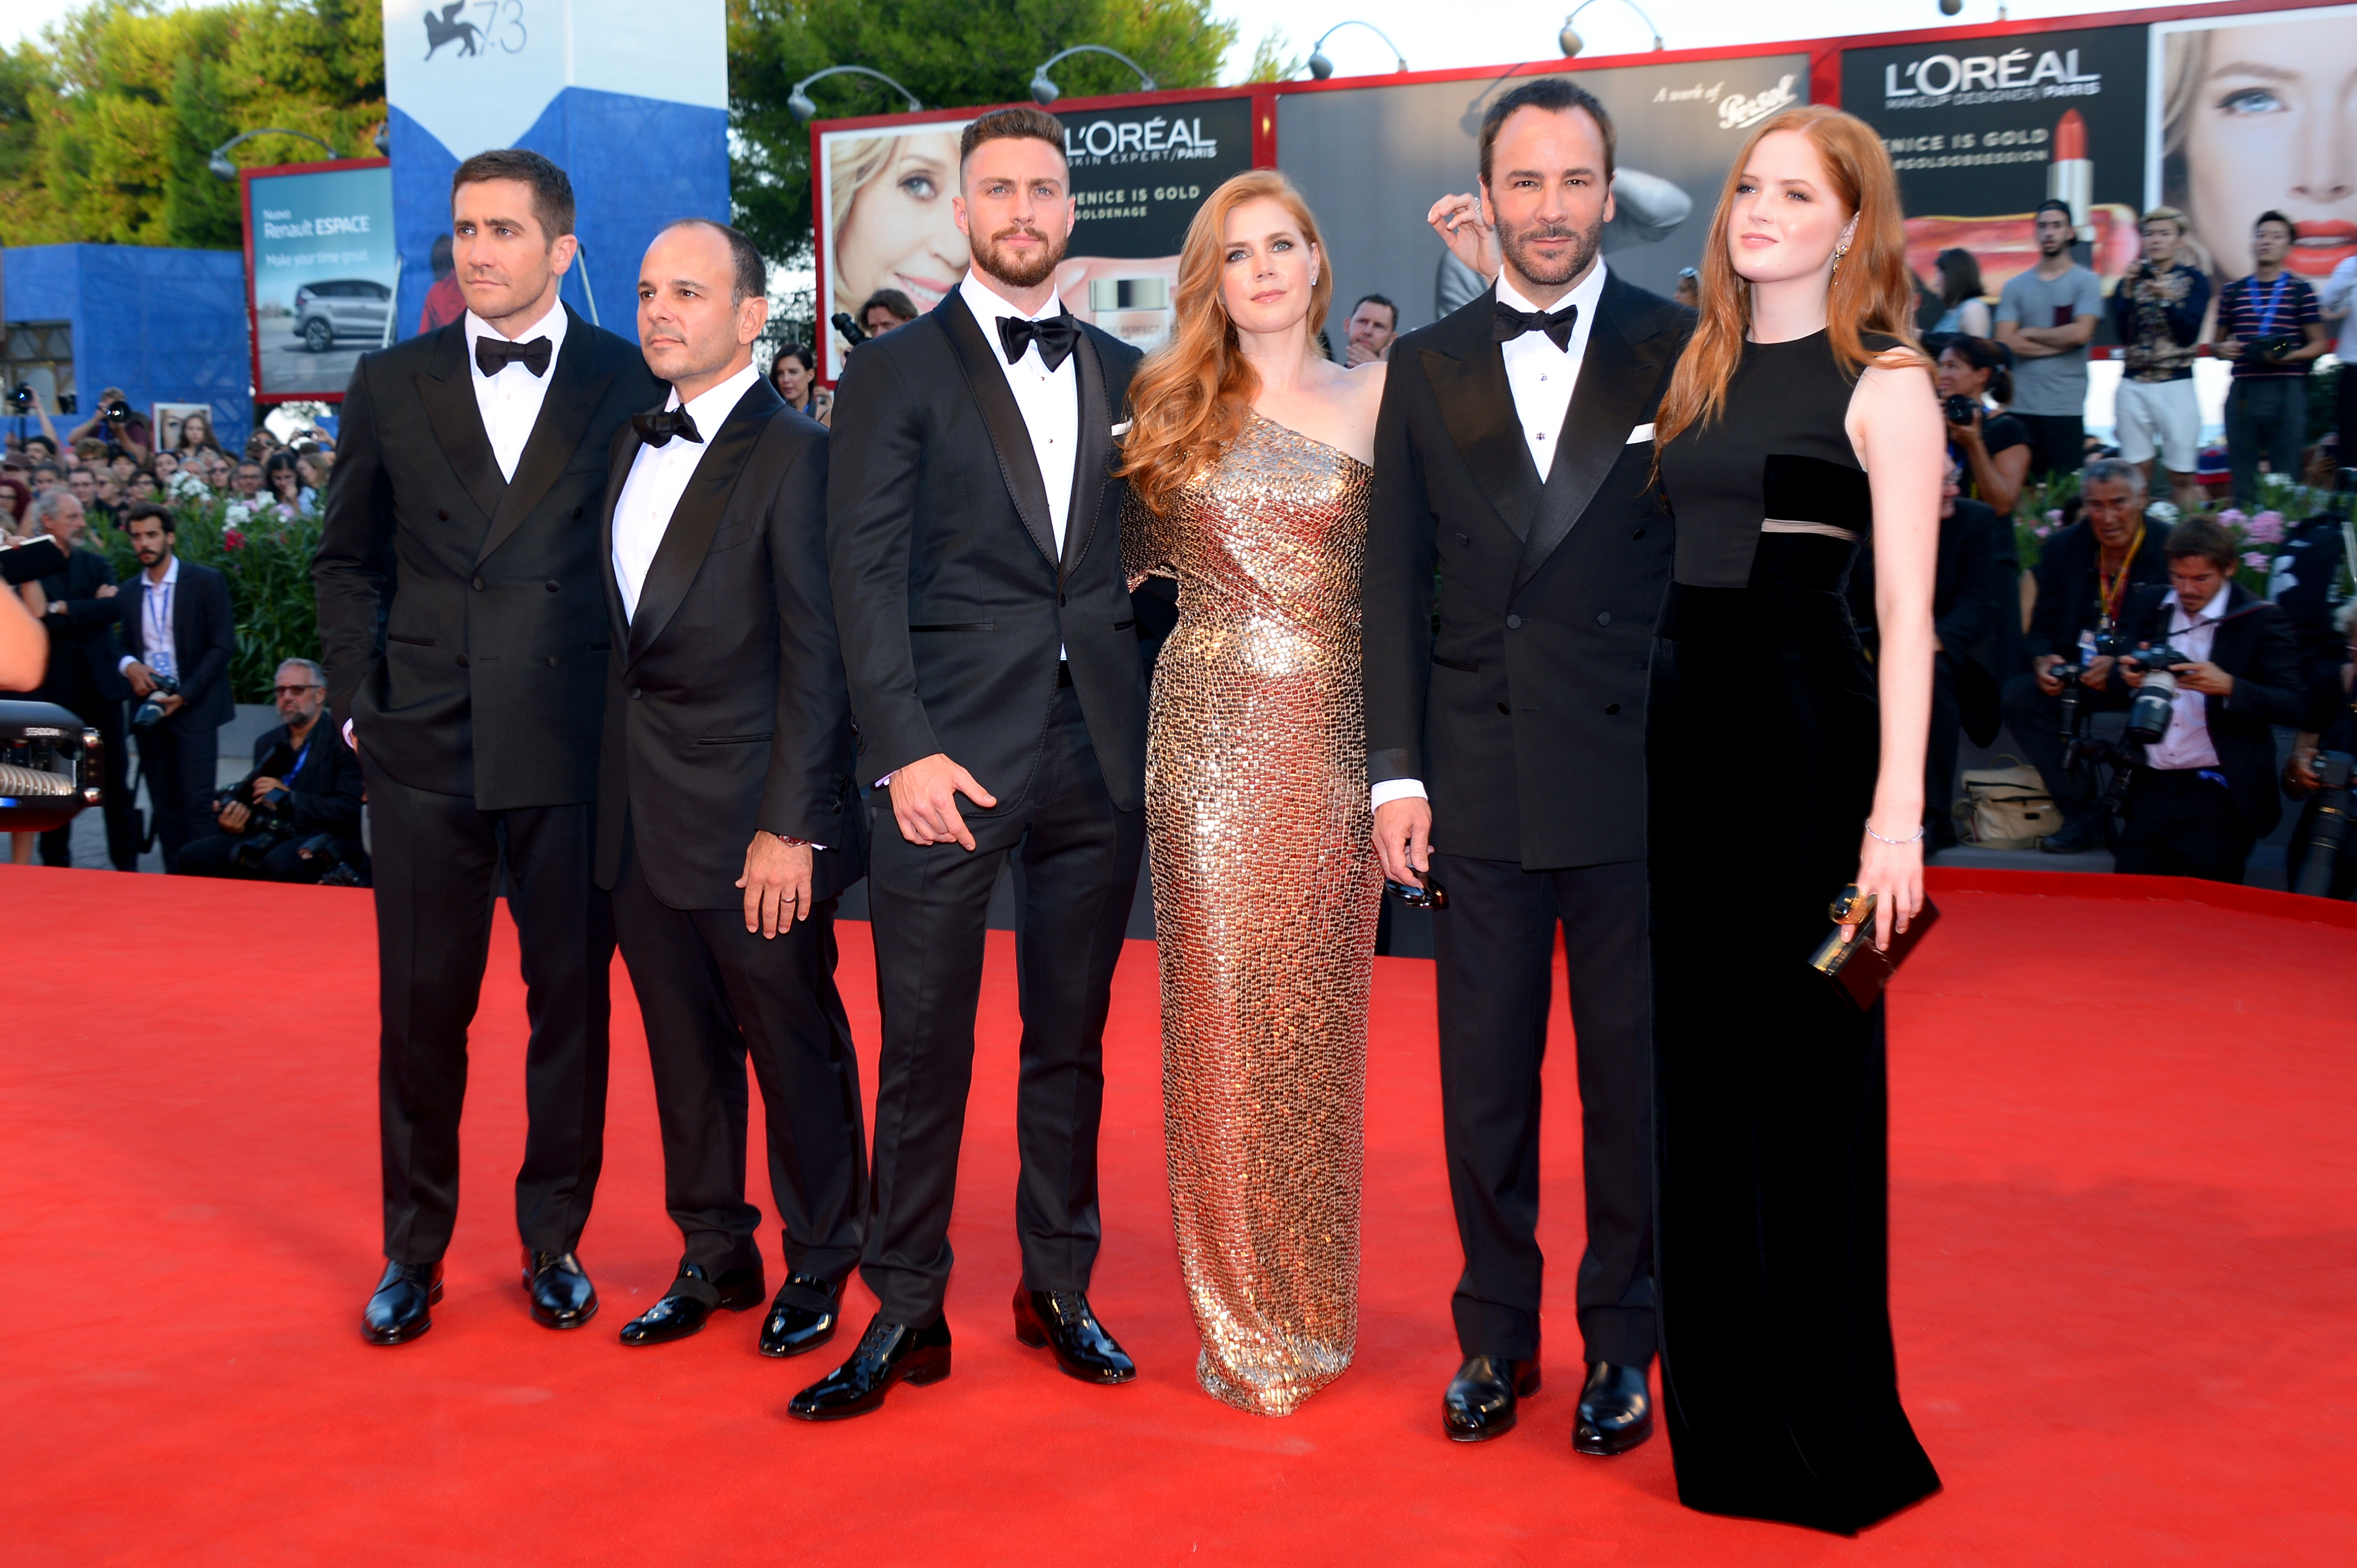 VENICE, ITALY - SEPTEMBER 02:  Jake Gyllenhaal, Robert Salerno, Aaron Taylor Johnson, Amy Adams, Tom Ford and Ellie Bamber  attend the premiere of 'Nocturnal Animals' during the 73rd Venice Film Festival at Sala Grande on September 2, 2016 in Venice, Italy.  (Photo by Dominique Charriau/WireImage)